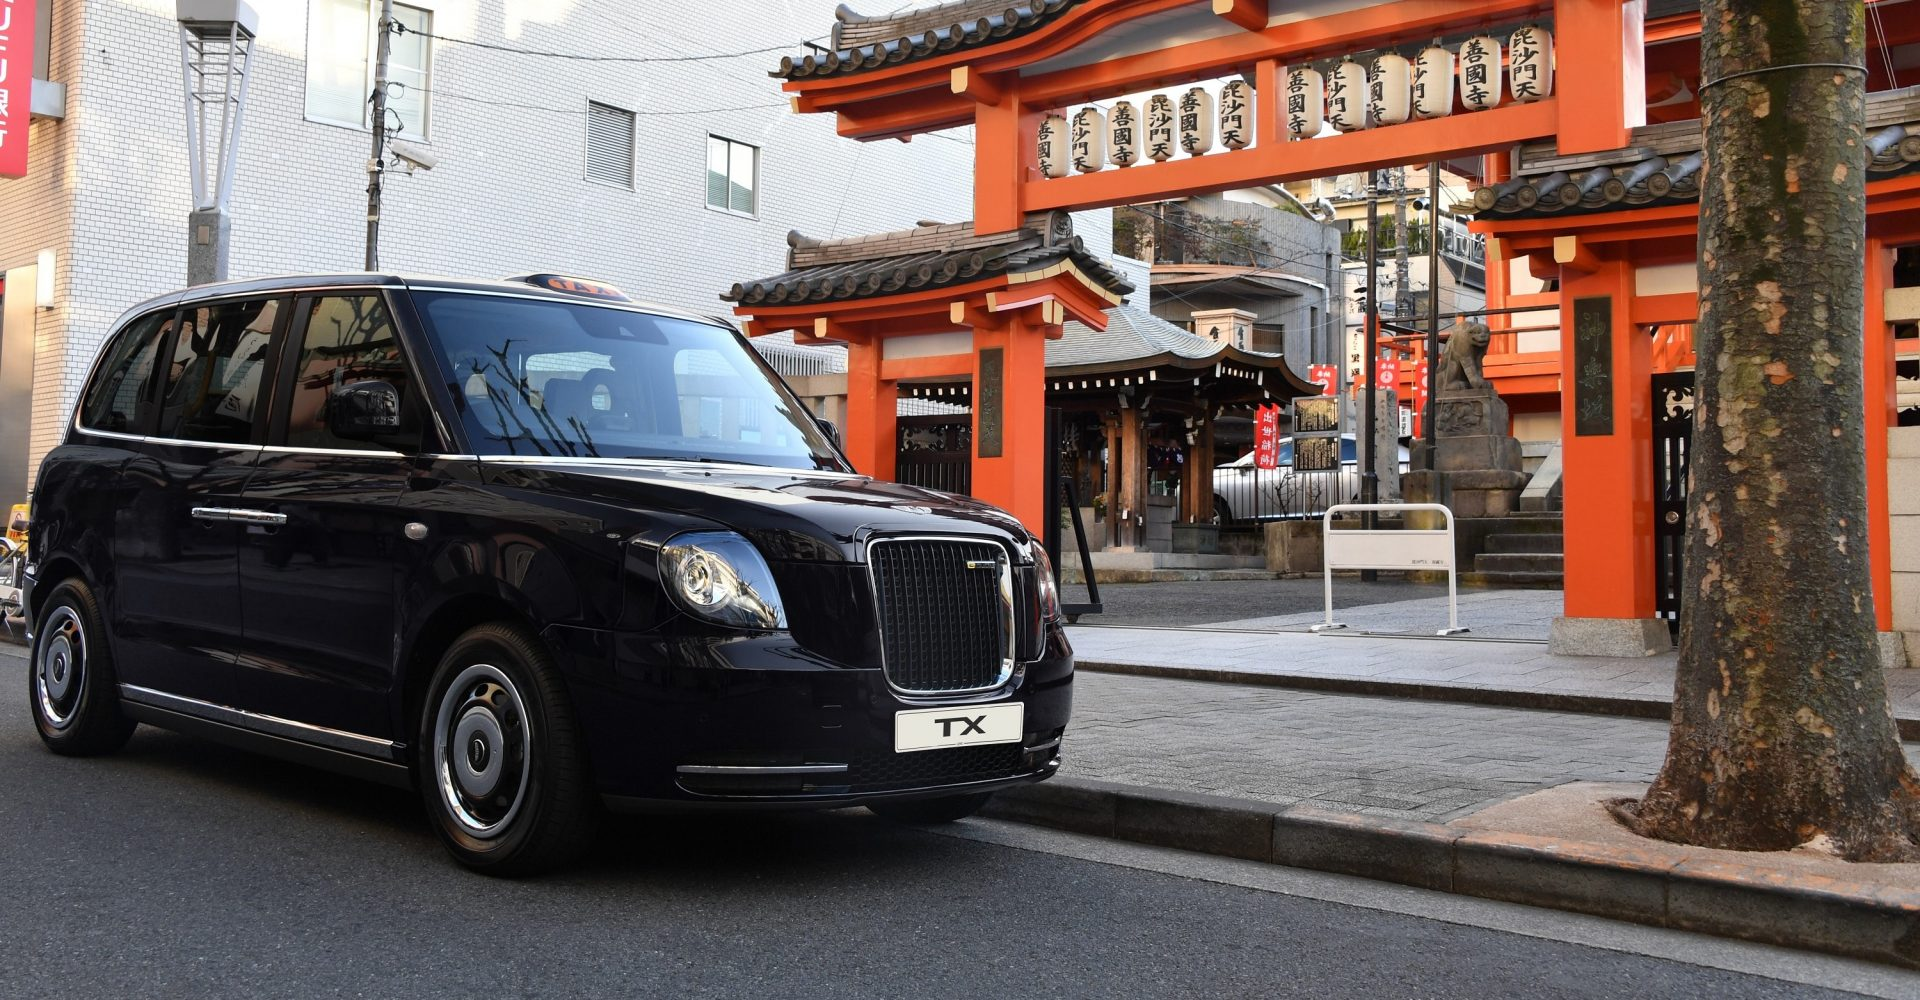 The new electrified London cab is now on sale in Japan